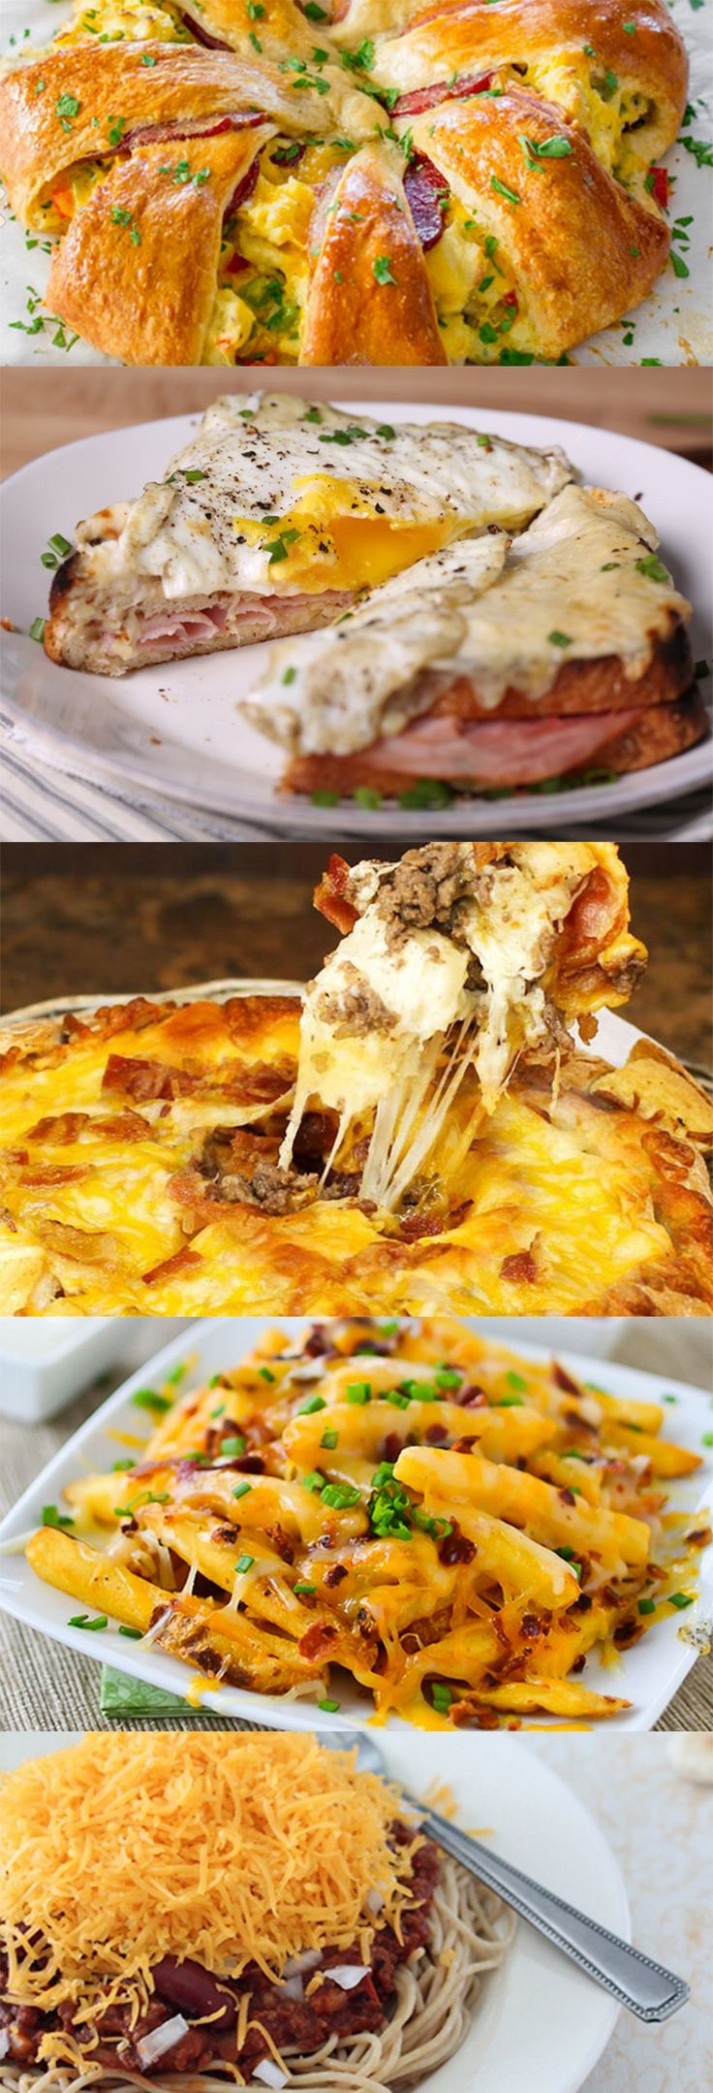 78 Best Images About Cheese Wiz On Pinterest | Cheese ..